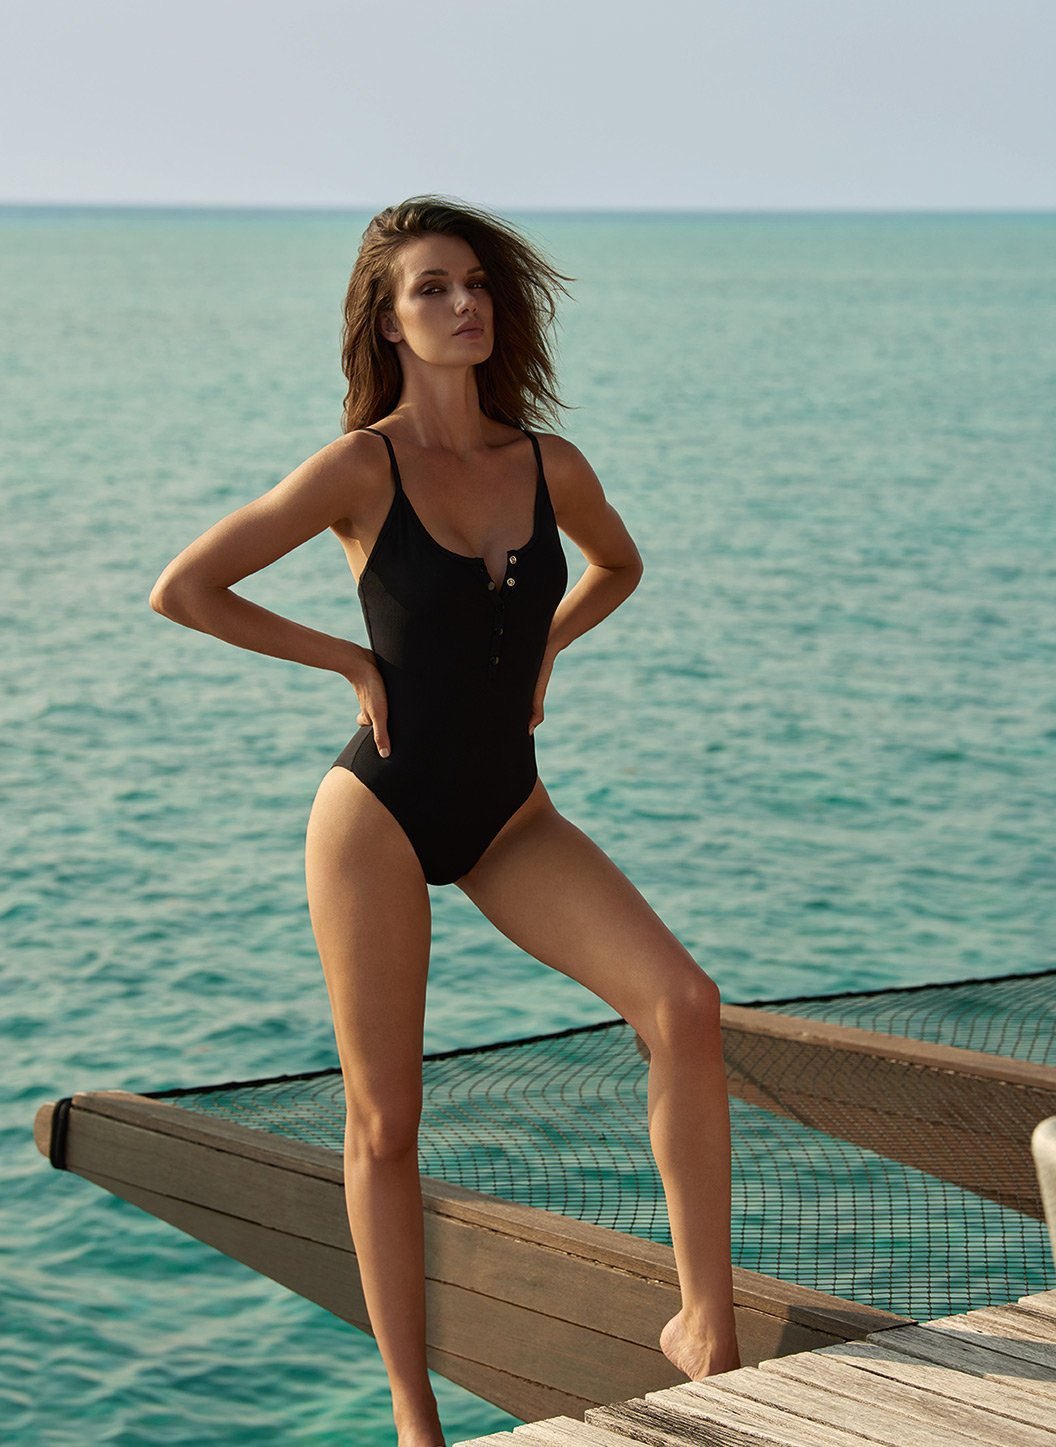 calabasas black ribbed overtheshoulder popper onepiece swimsuit lifestyle 2019